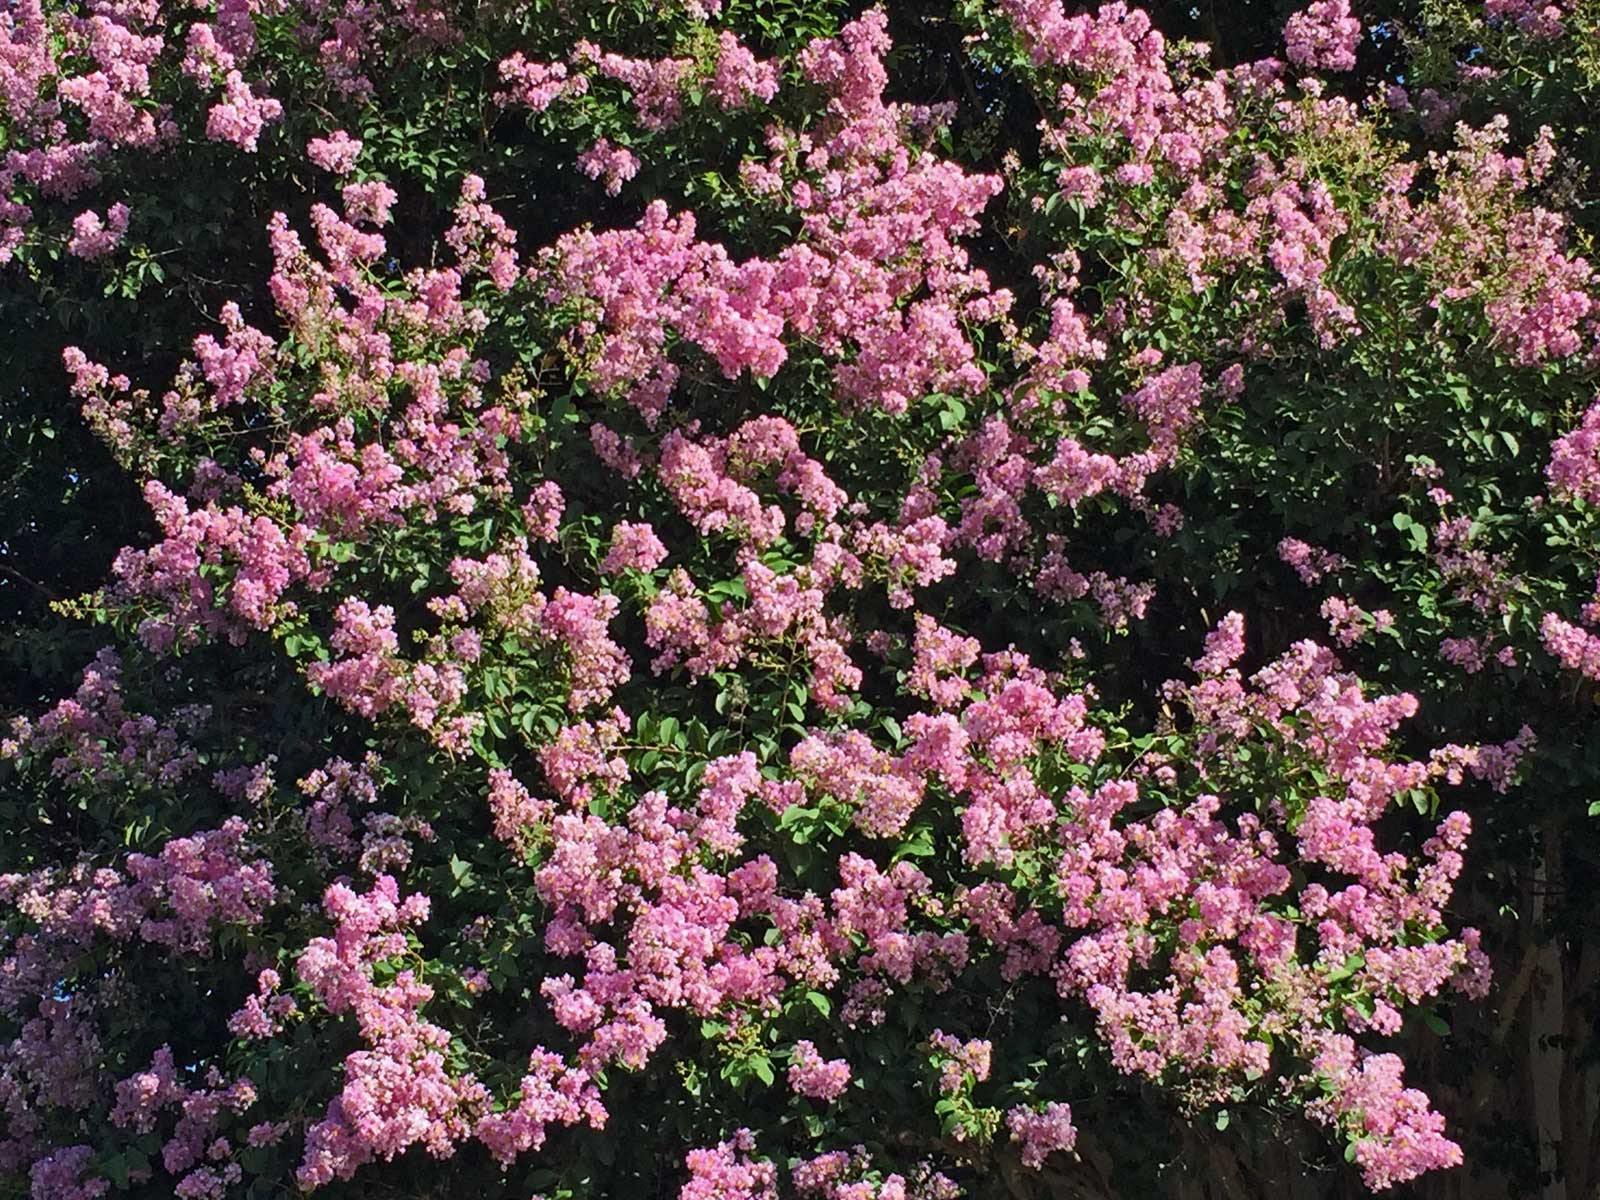 A closer view of the blooms of the 'Muskogee' Crape Myrtle.